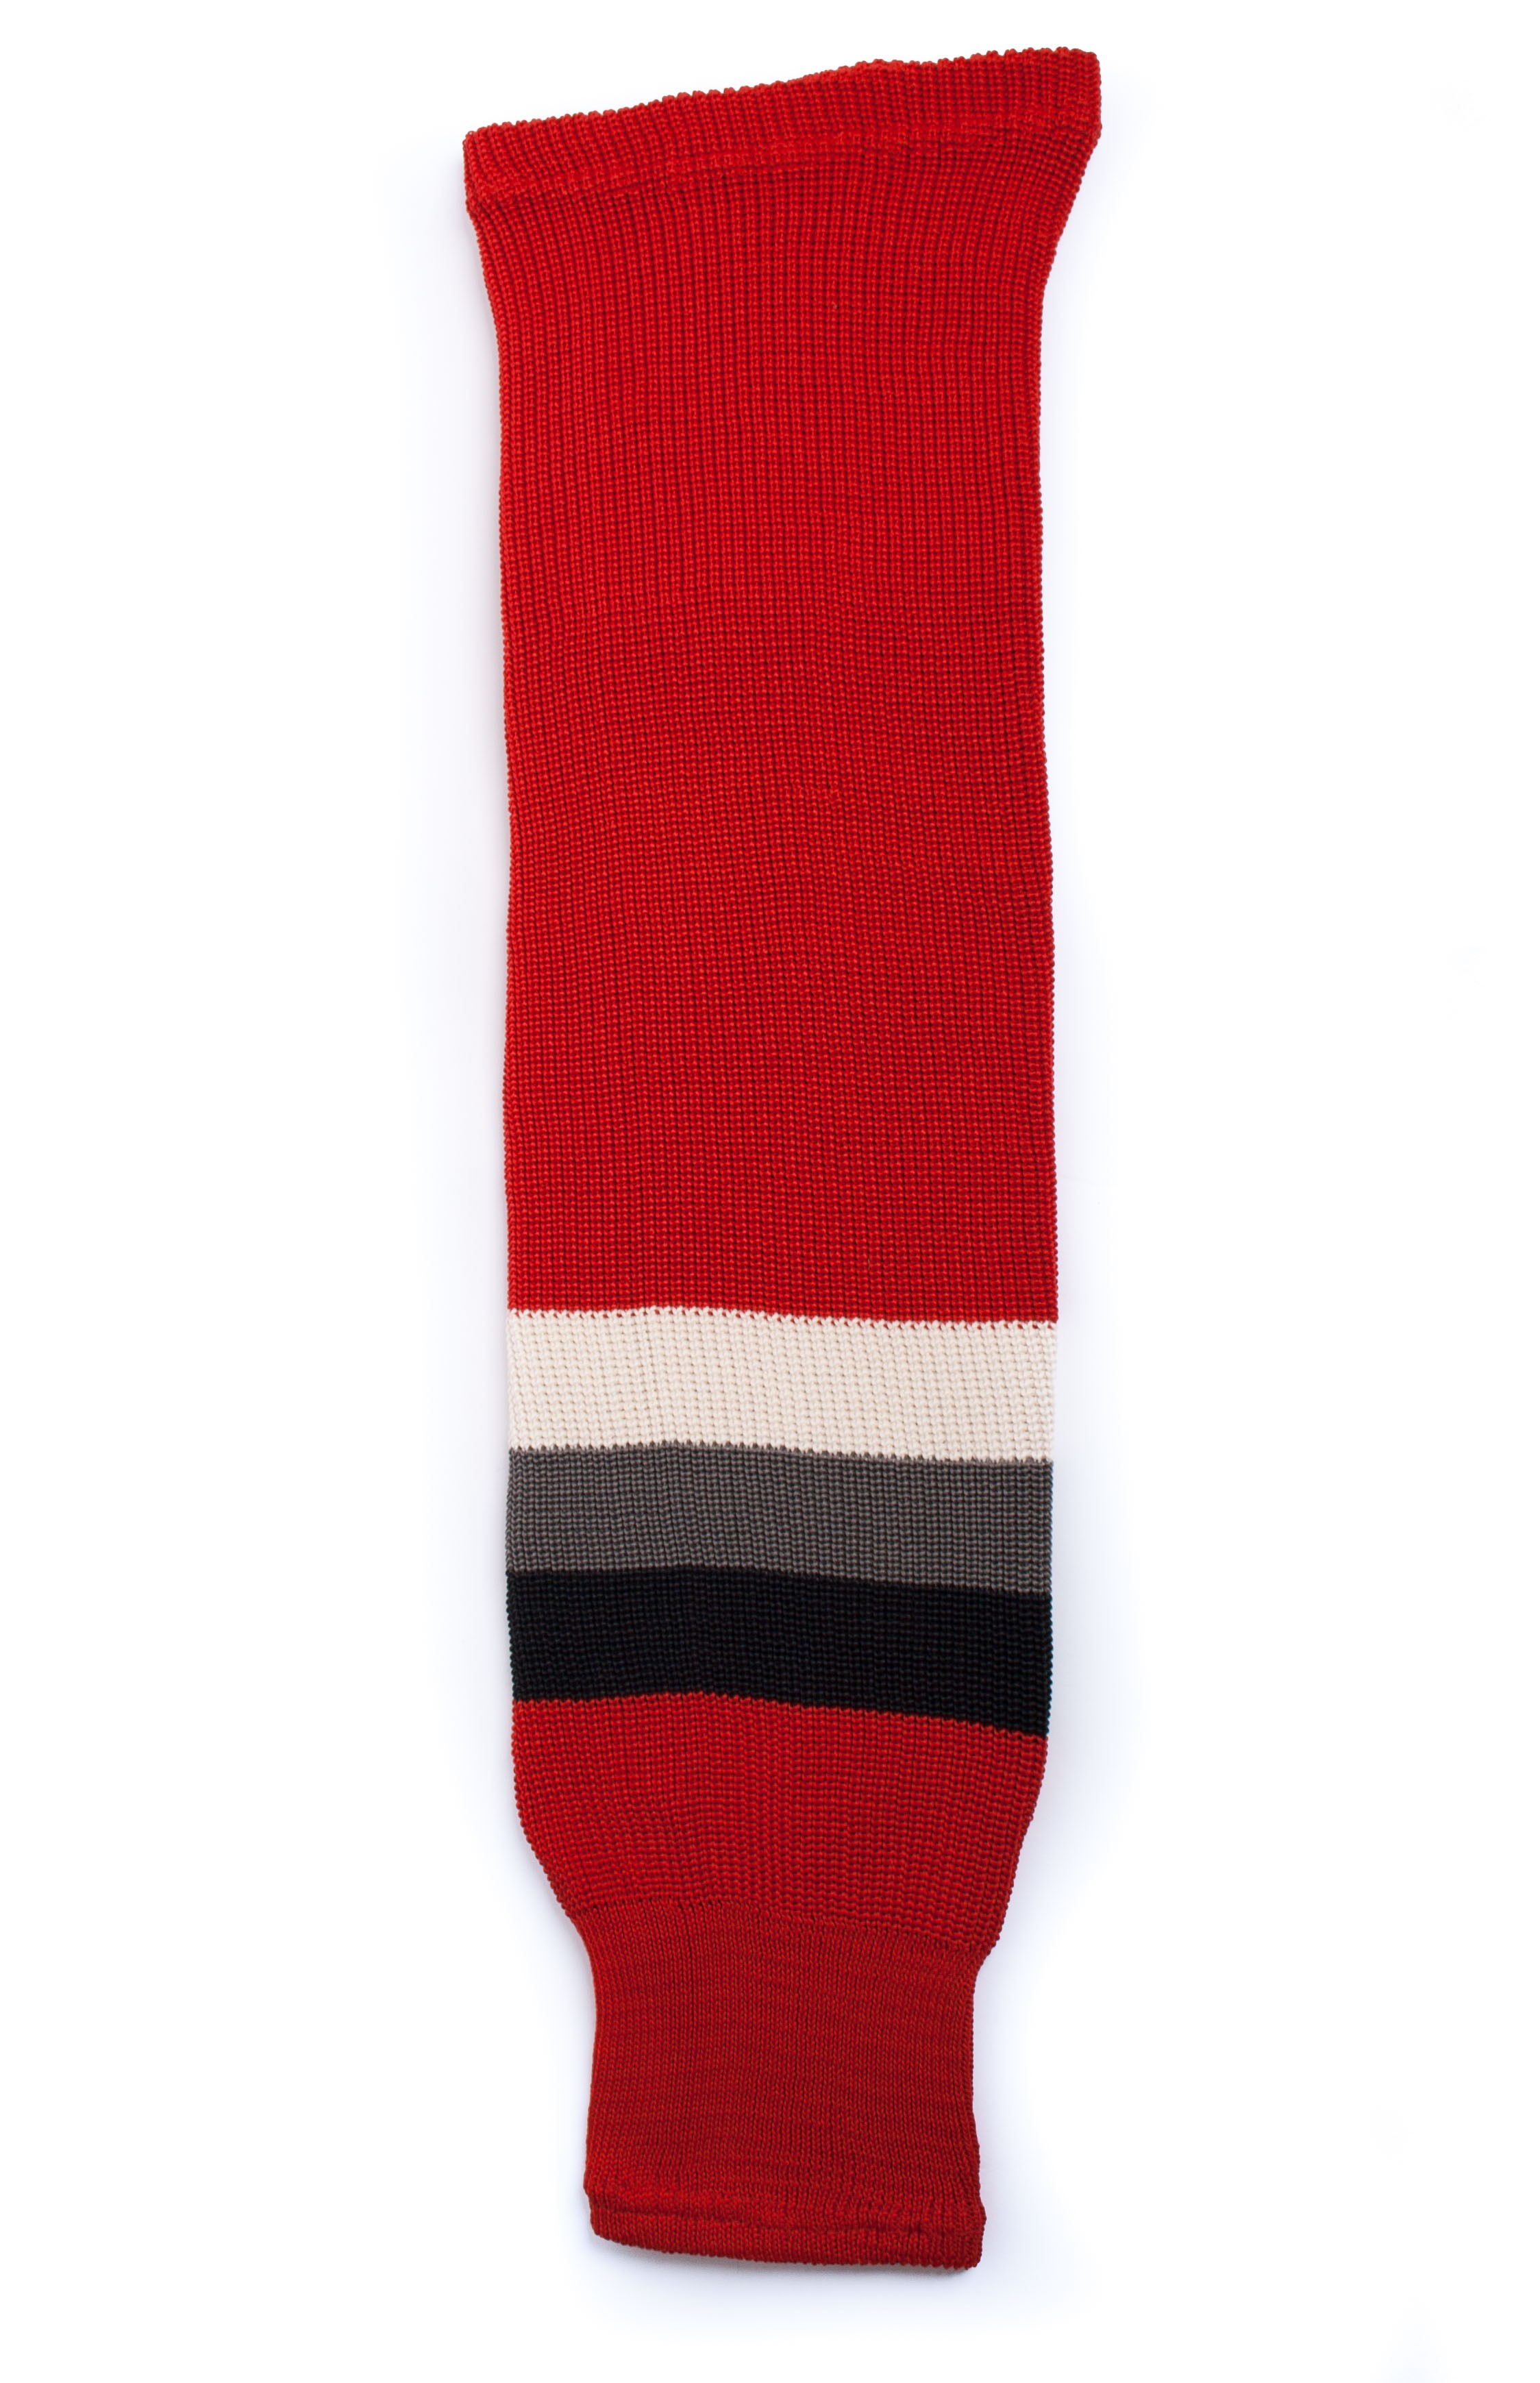 HOKEJAM.LV Knit Adult Hockey Socks#009